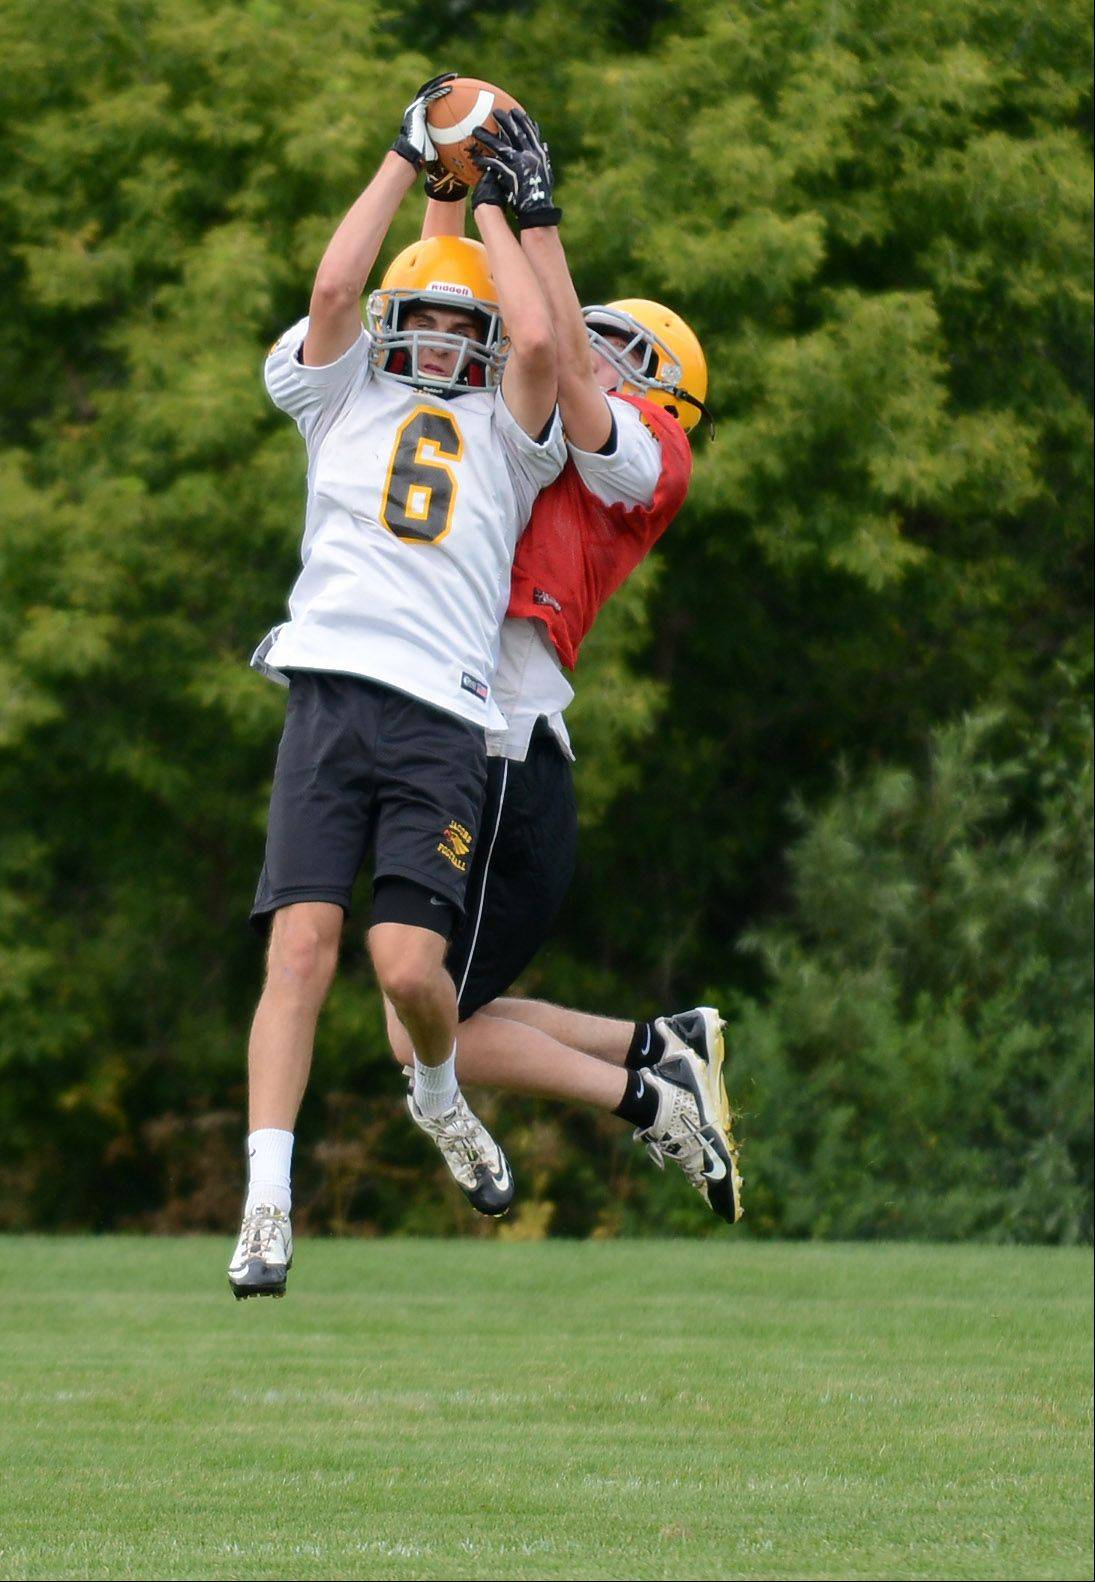 Ryan Sargent nabs an interception during a Jacobs practice.